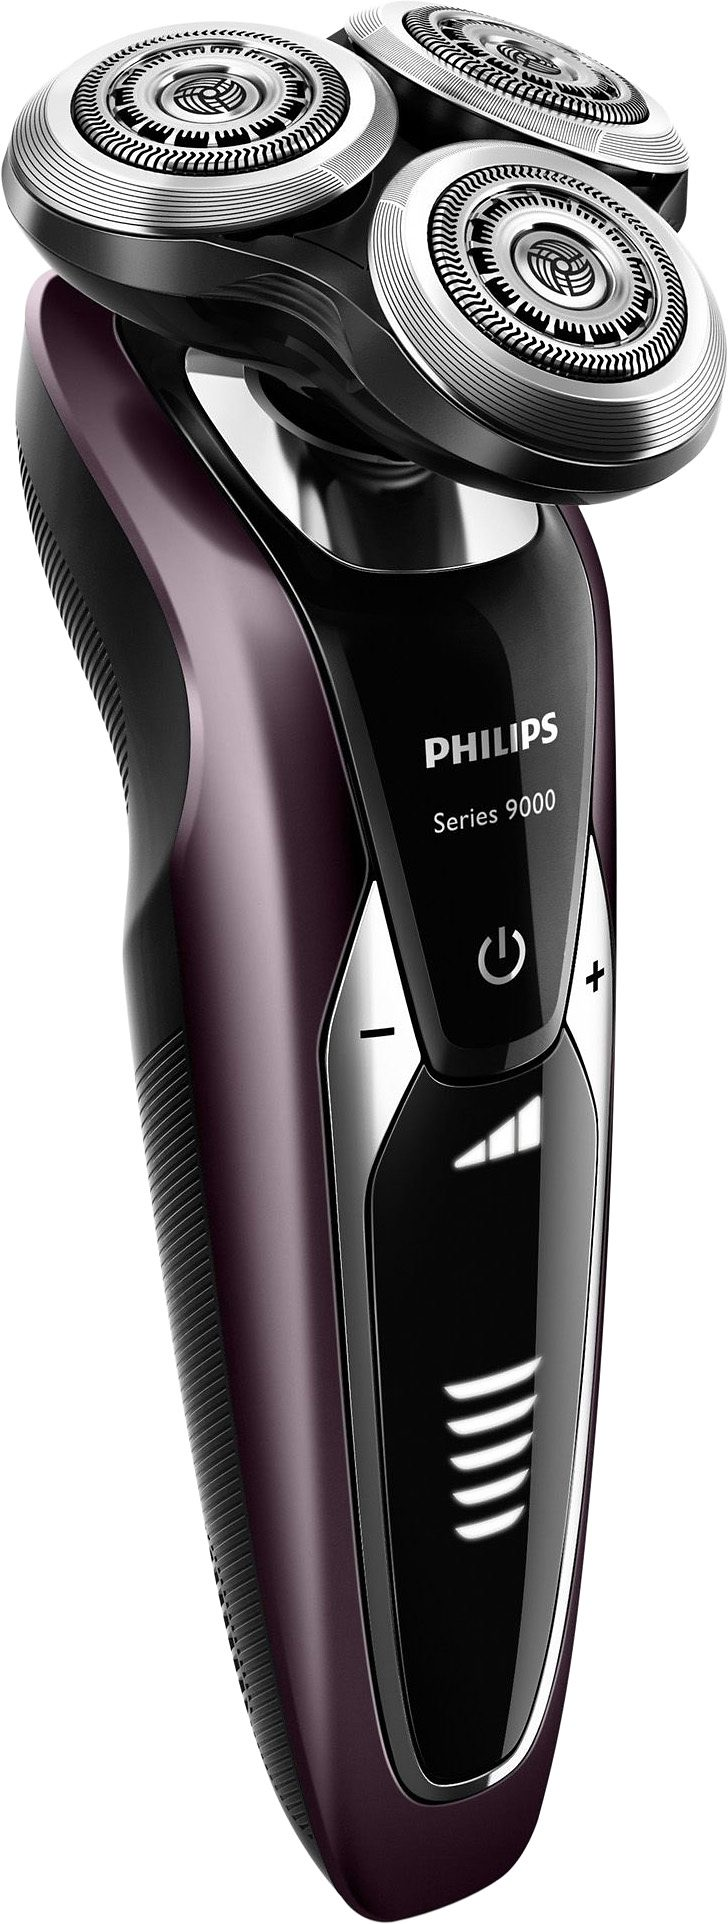 Philips Herrenrasierer Series 9000 S9521/31 Wet&Dry